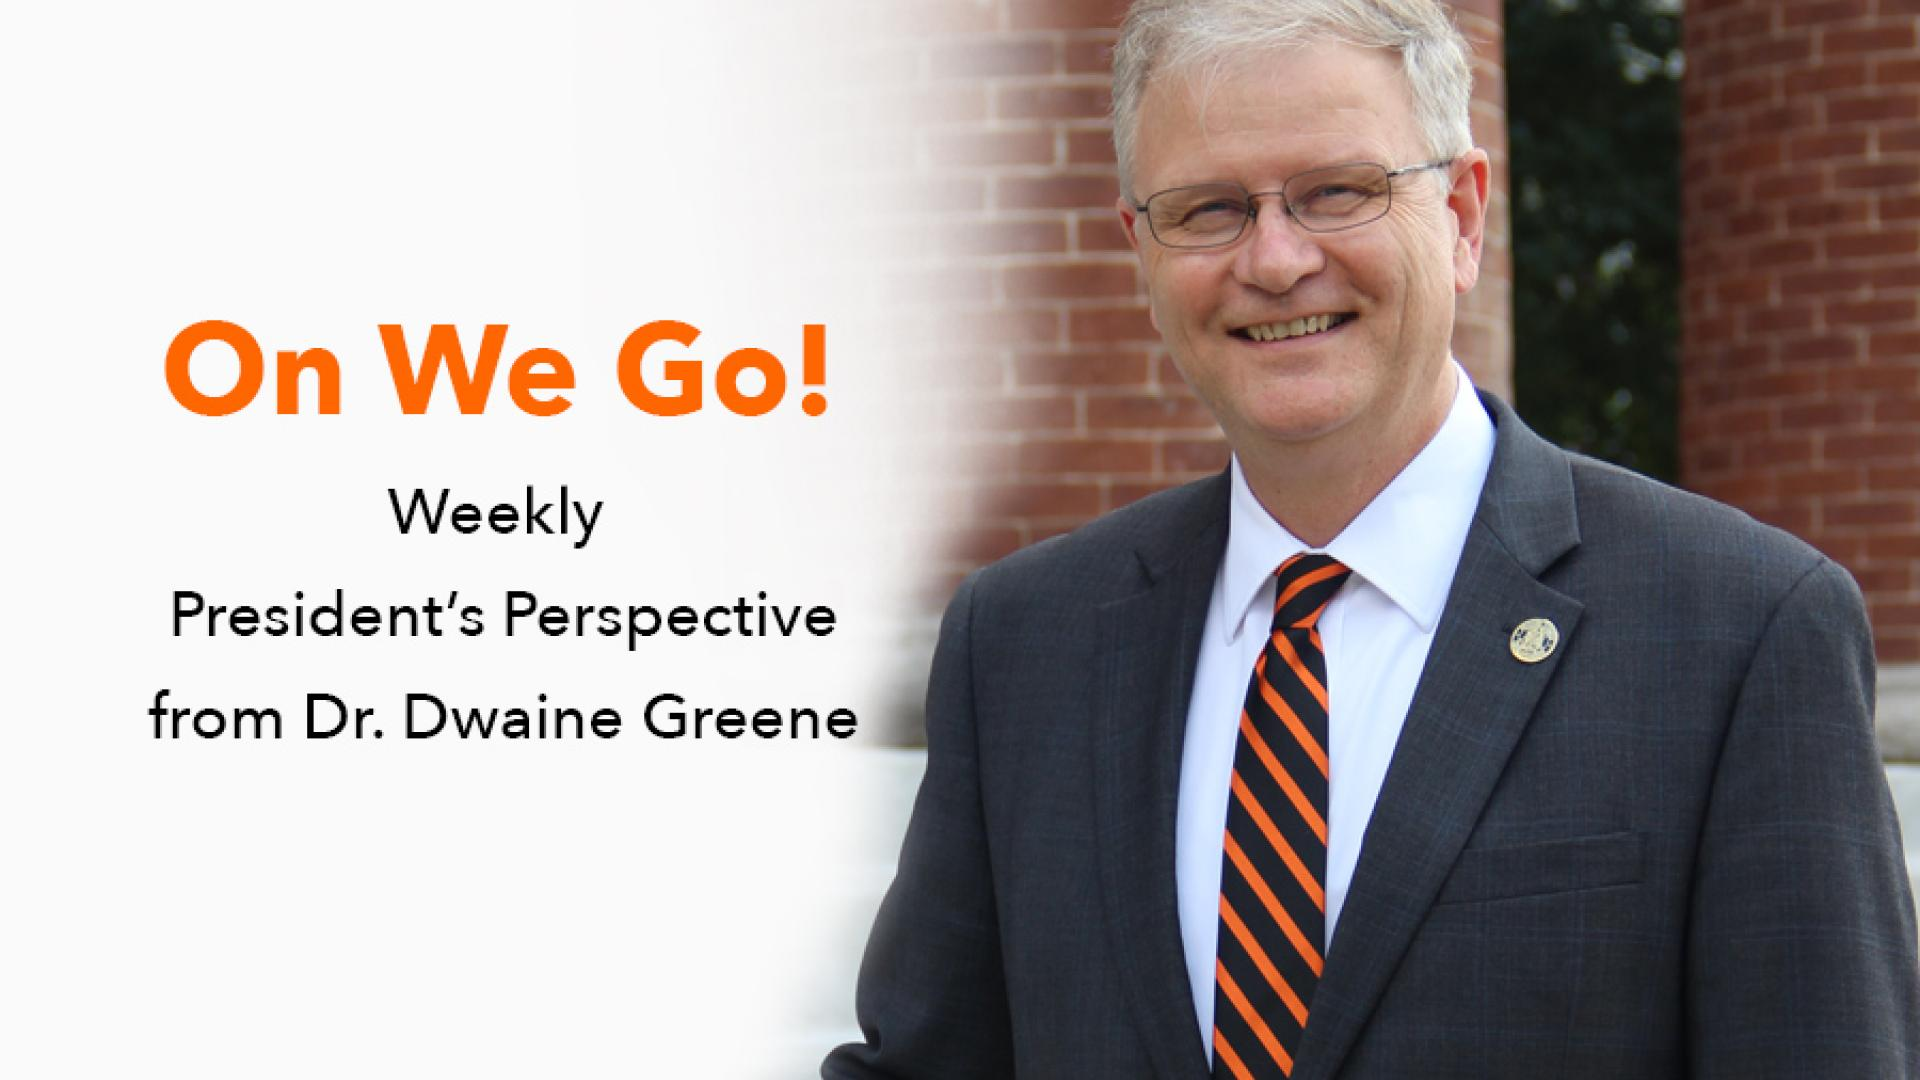 ON WE GO! - Weekly President's Perspective from Dr. Greene - March 7, 2018